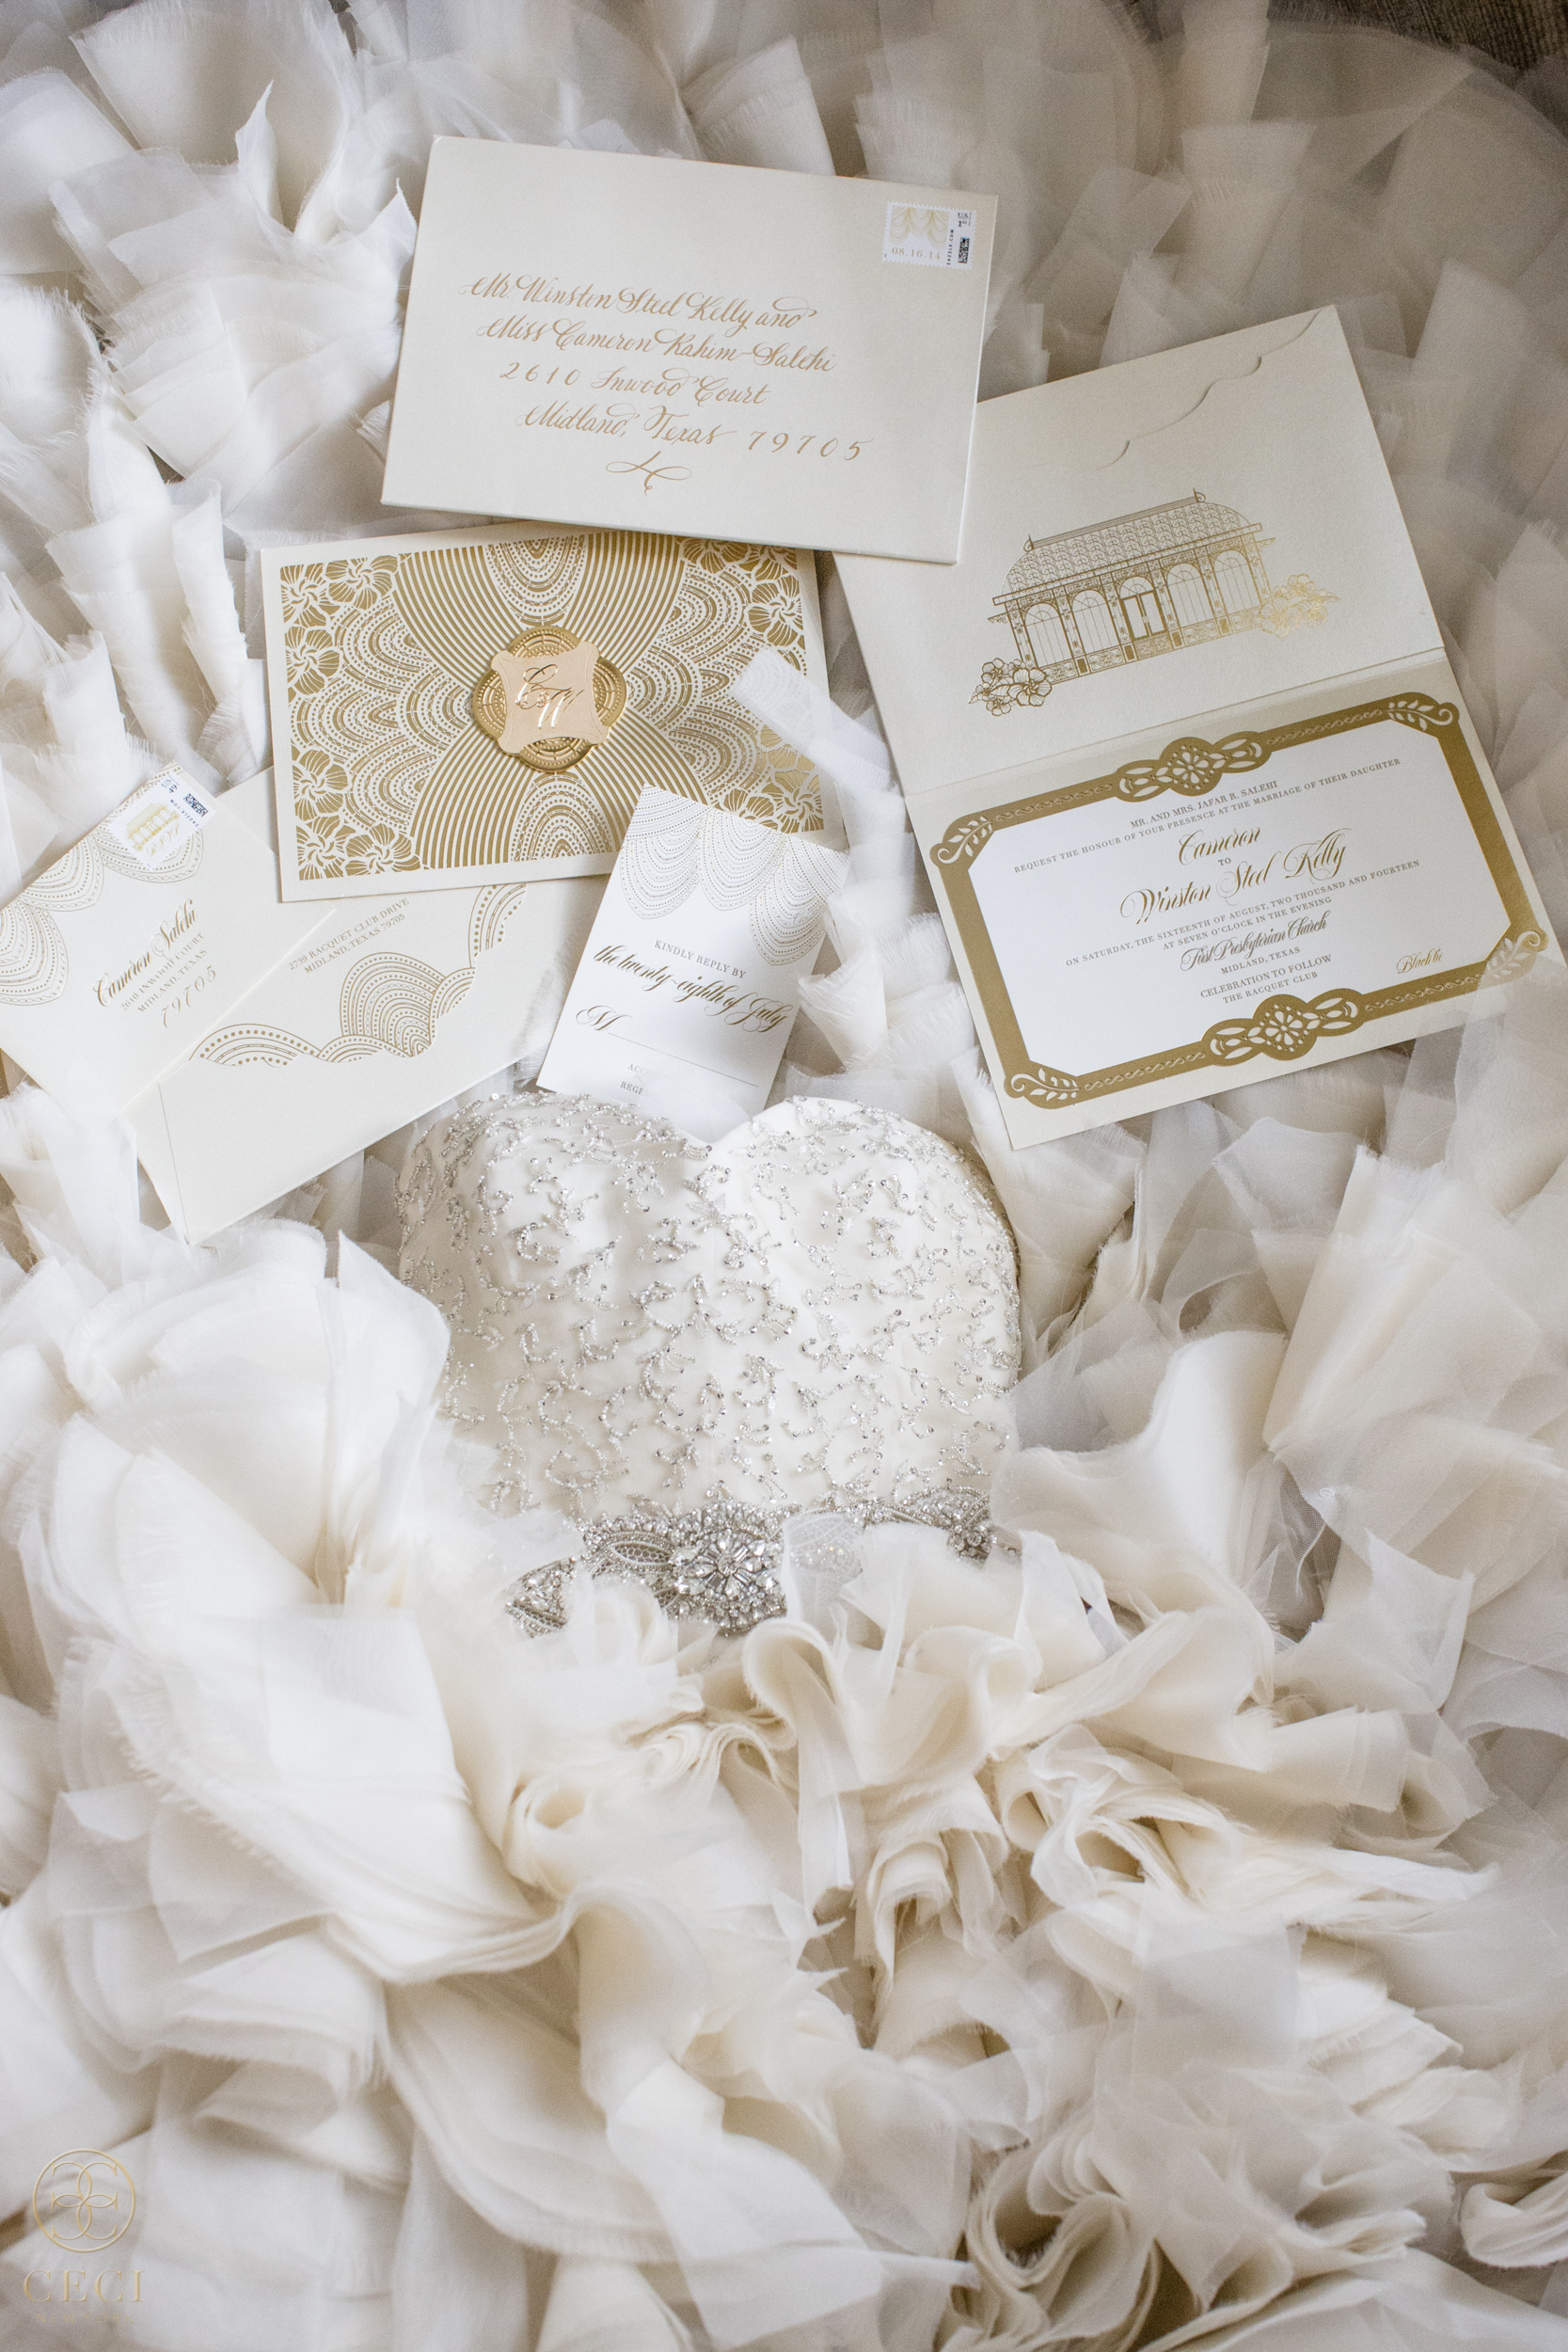 gold_deco_luxe_lavish_wedding_couture_luxury_invitation_design_lasercut_foil_glam_gilded_modern_sophisticated_midland_texas_invitations_suite_the_racquet_club-2.jpg